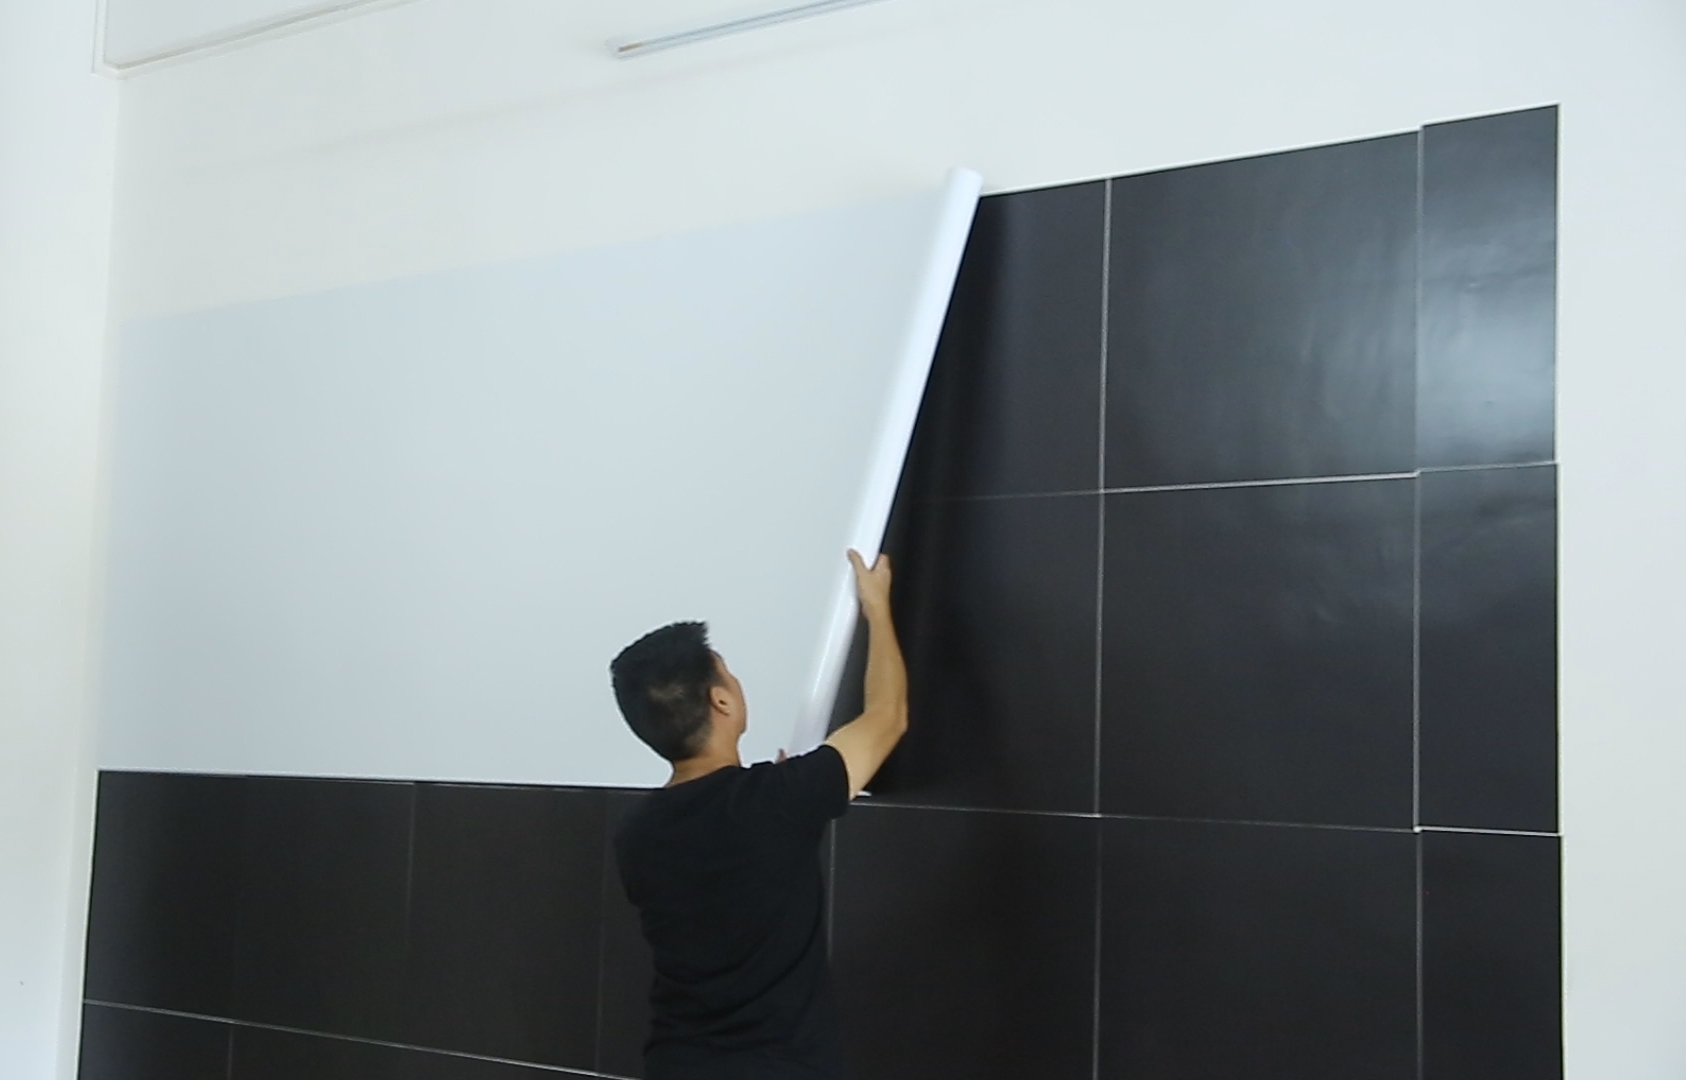 Whiteboard installation